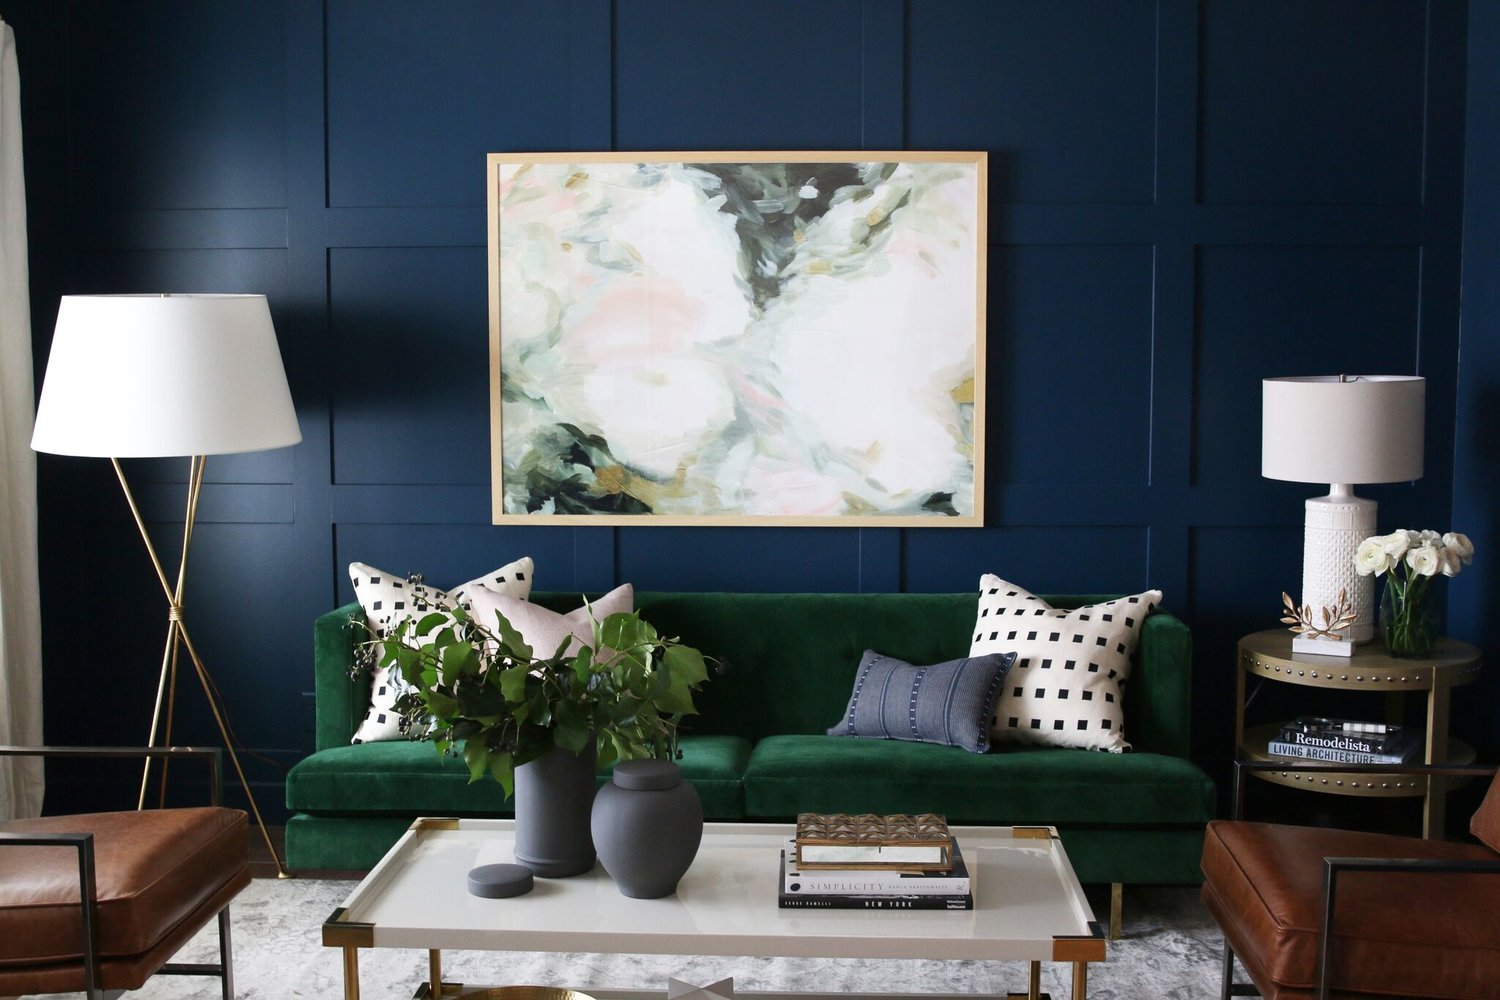 What We've Learned About Designing Living Spaces